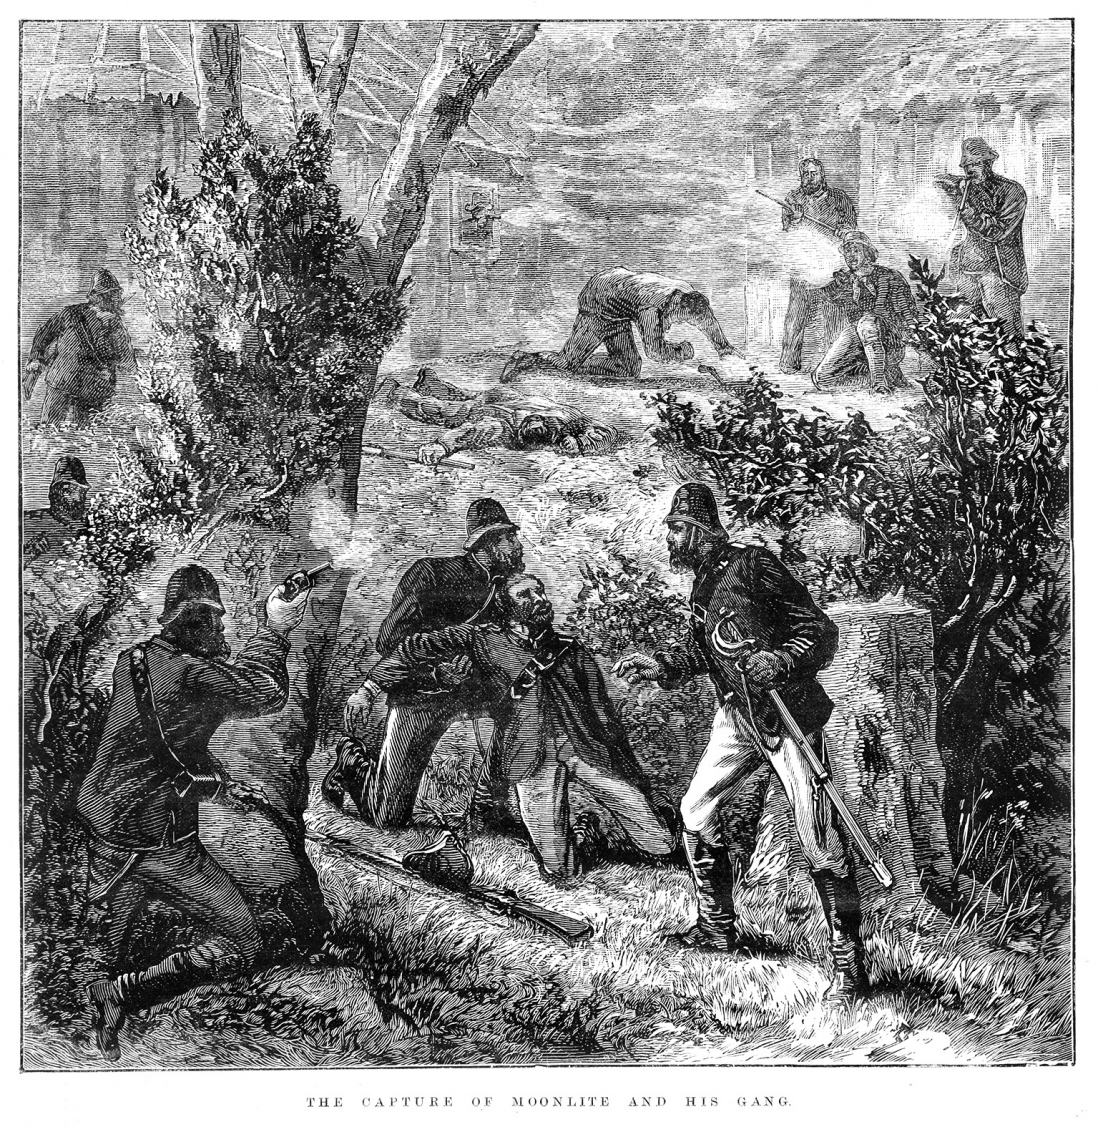 Engraved bush scene with three troopers in helmets with weapons, one holding wounded man, with other figures in background.